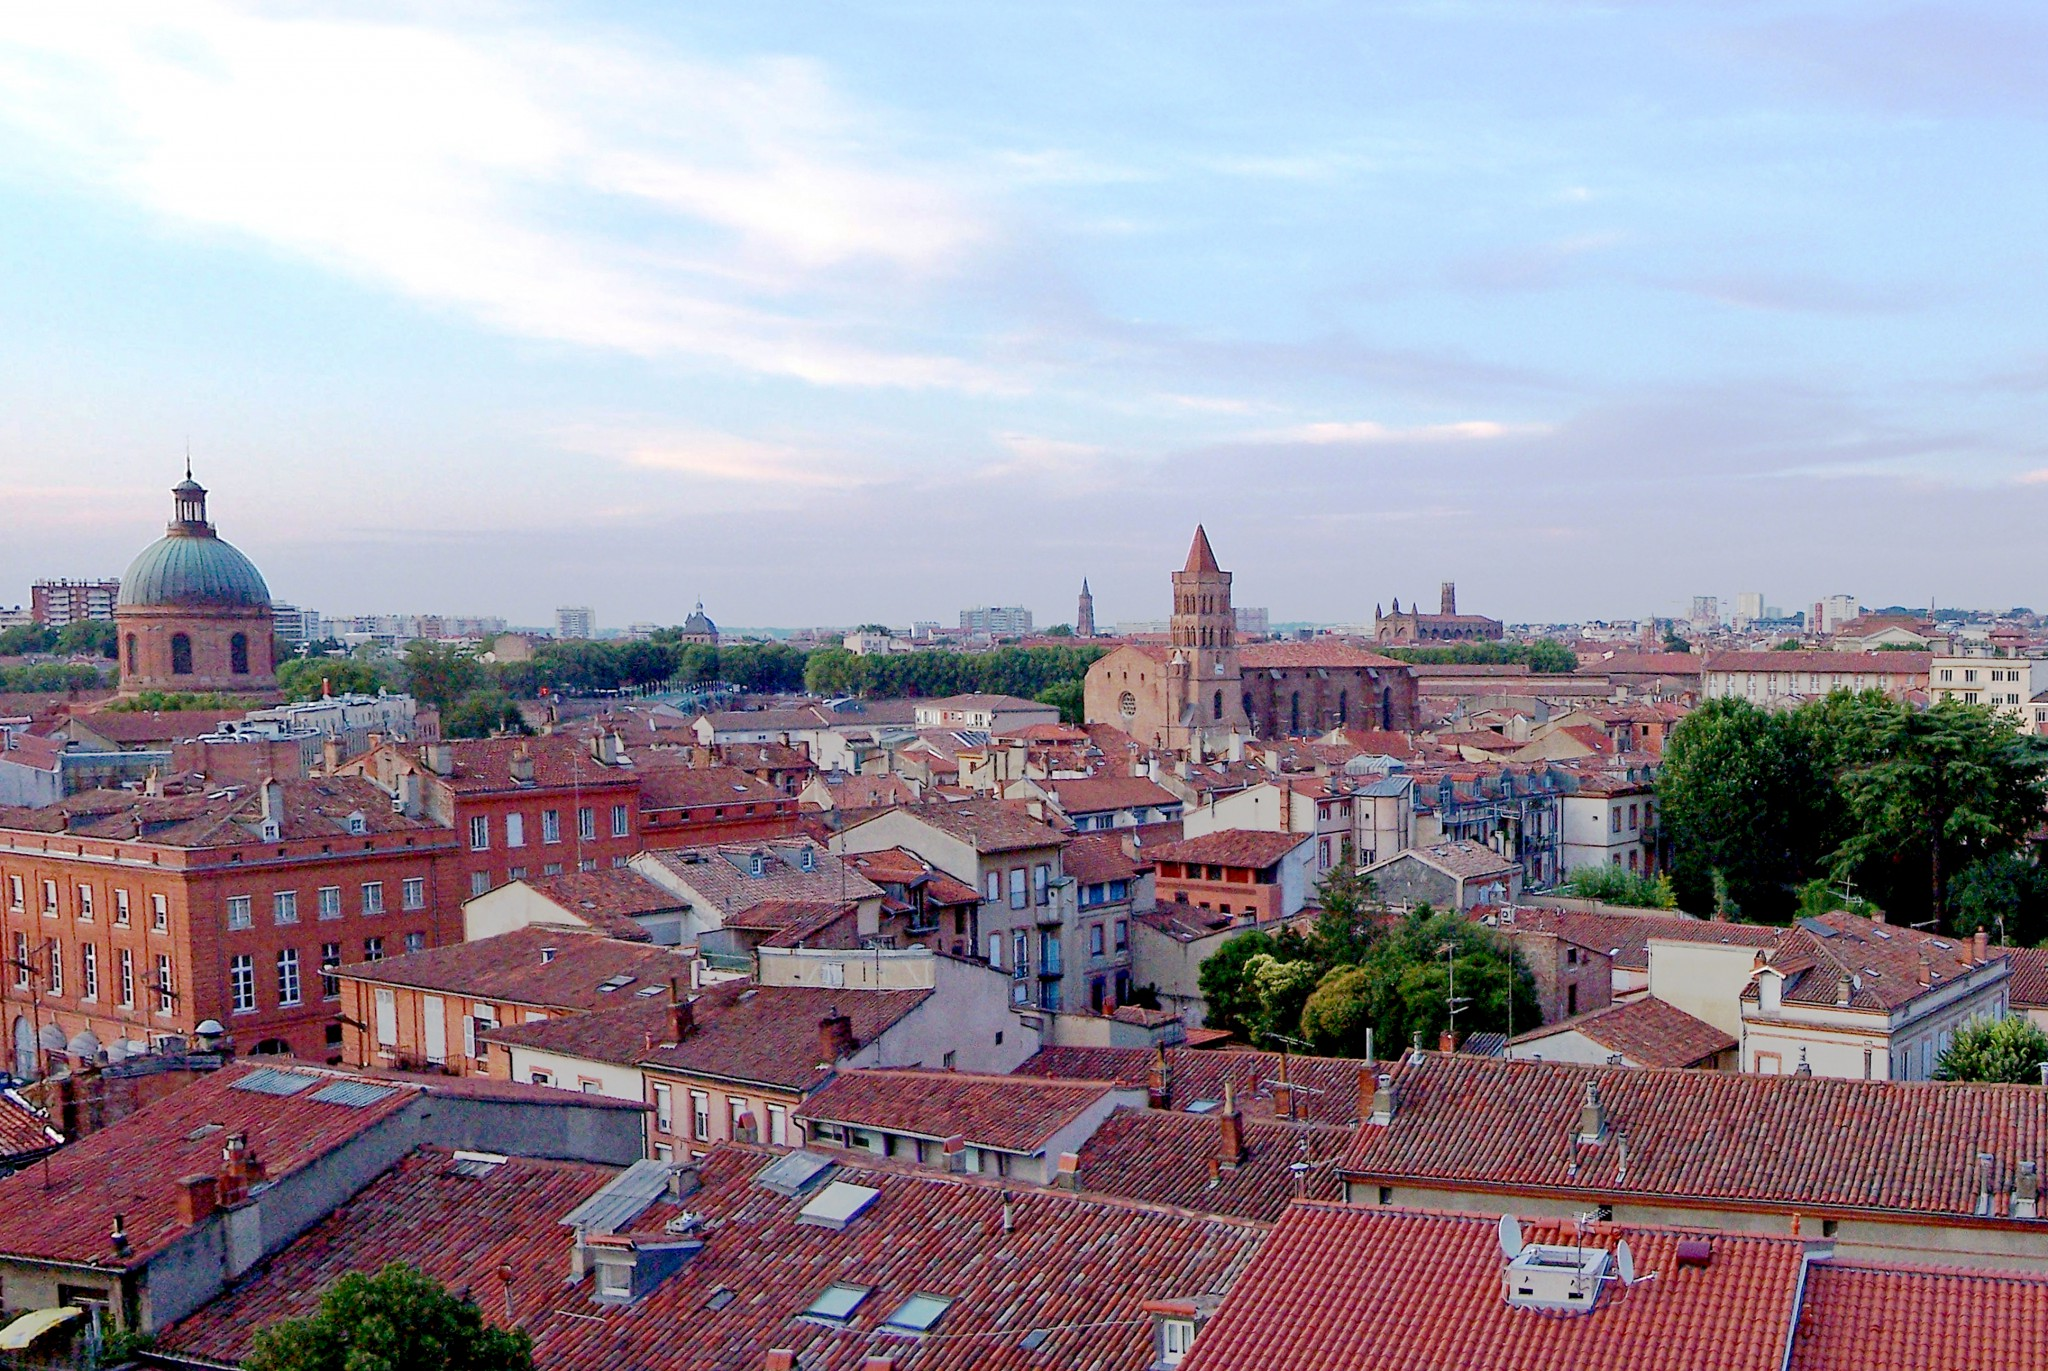 Largest cities of France - Toulouse Old Town © Ceridwen - licence [CC BY-SA 3